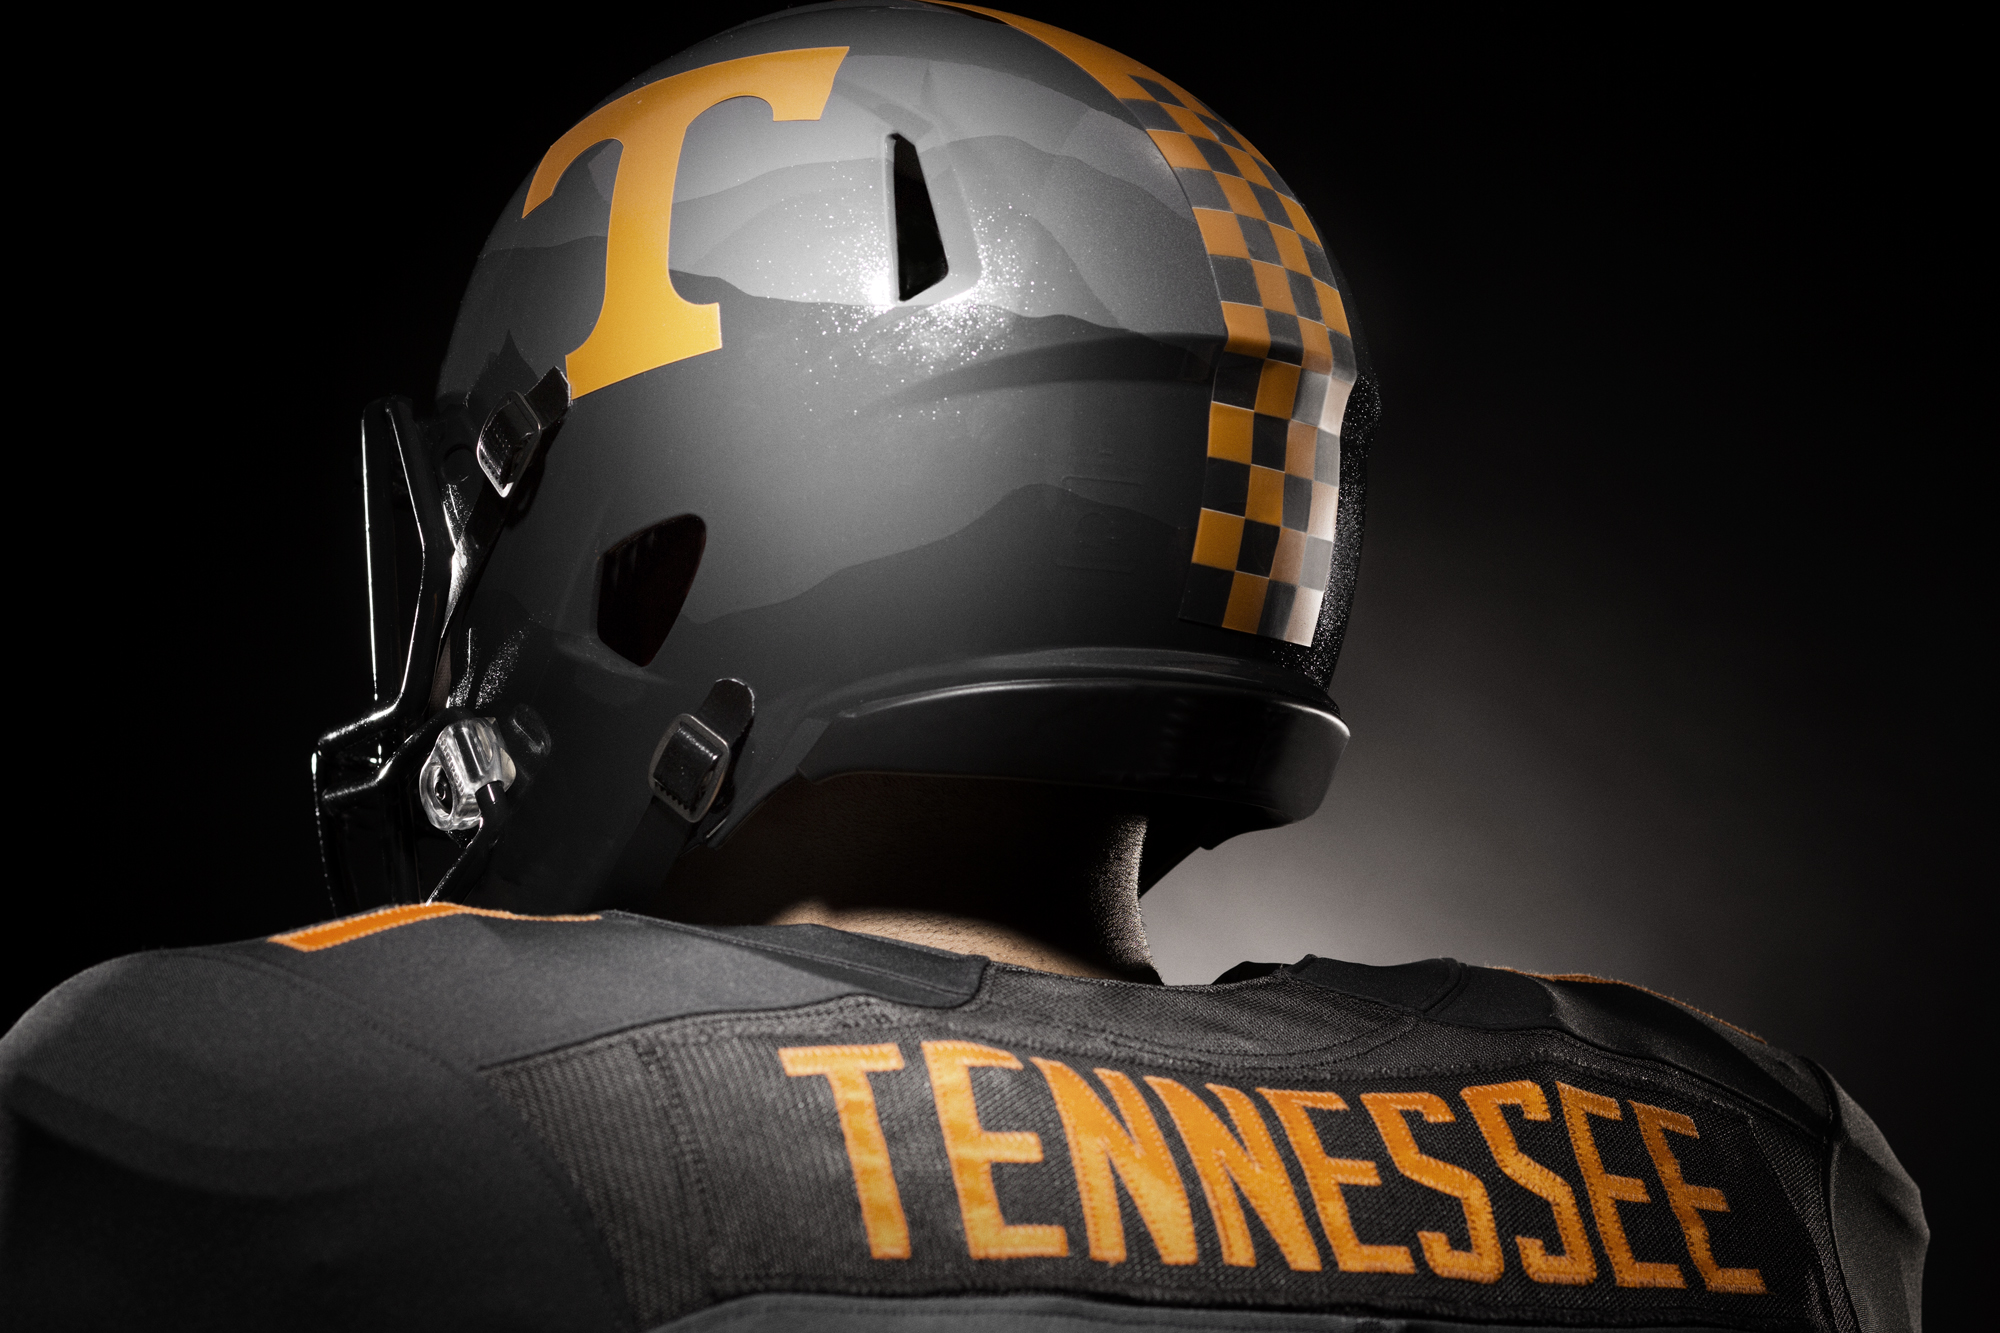 tennessee football - photo #9